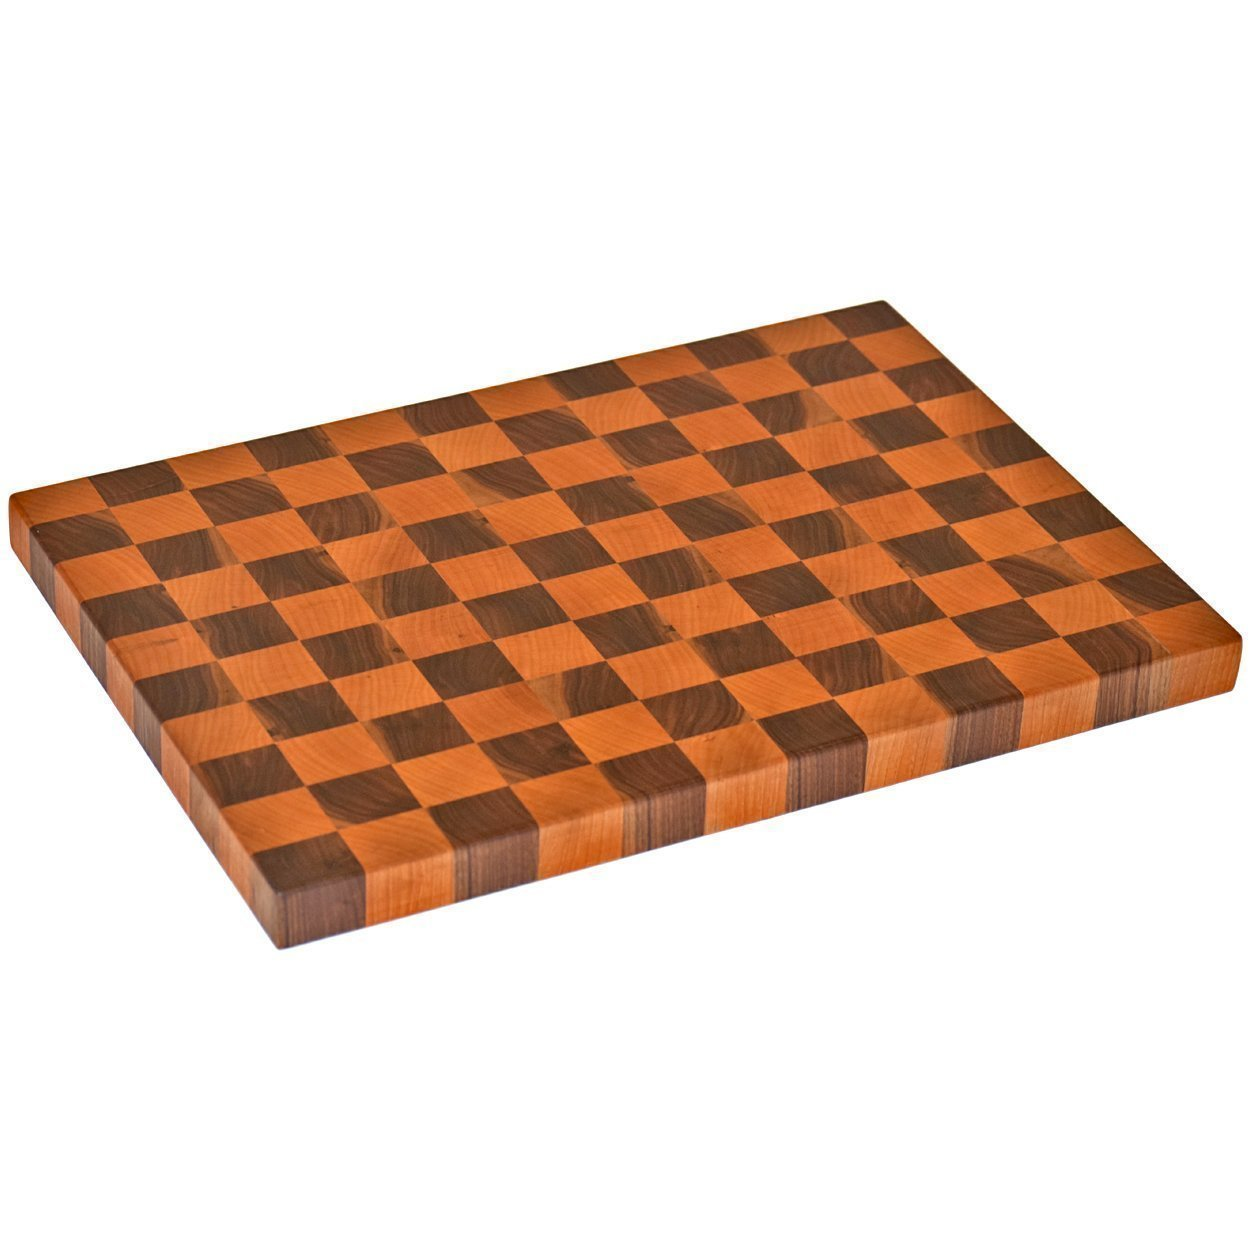 Handmade Cherry Walnut End Grain Wood Cutting Board Reversible Wood Butcher Block Large Chopping Board by The Practical Plankist